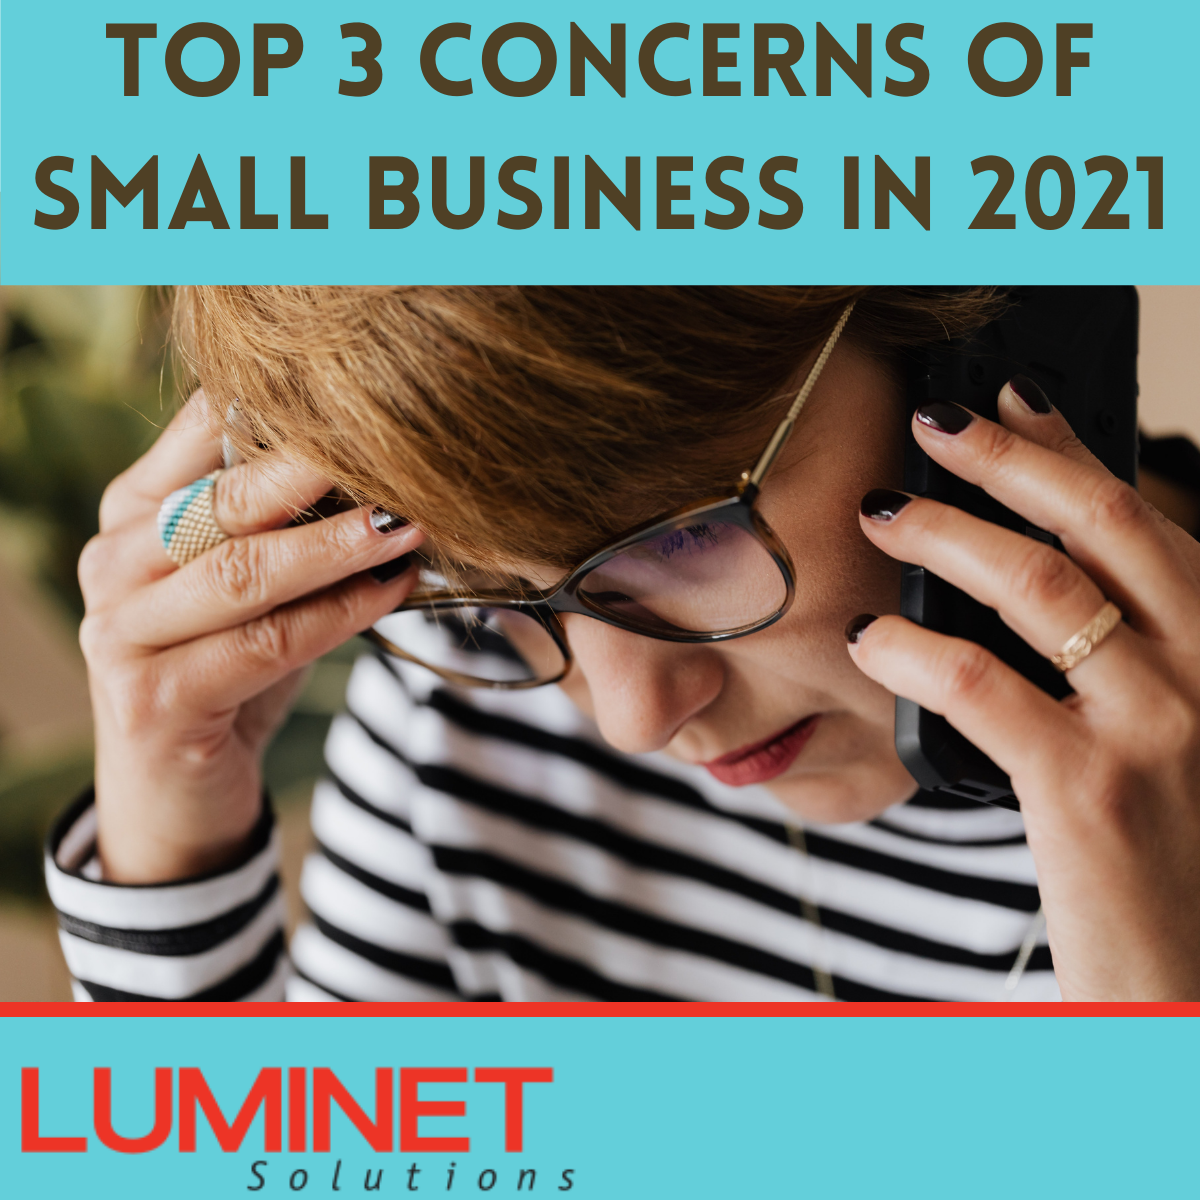 Top 3 Concerns Of Small Business In 2021